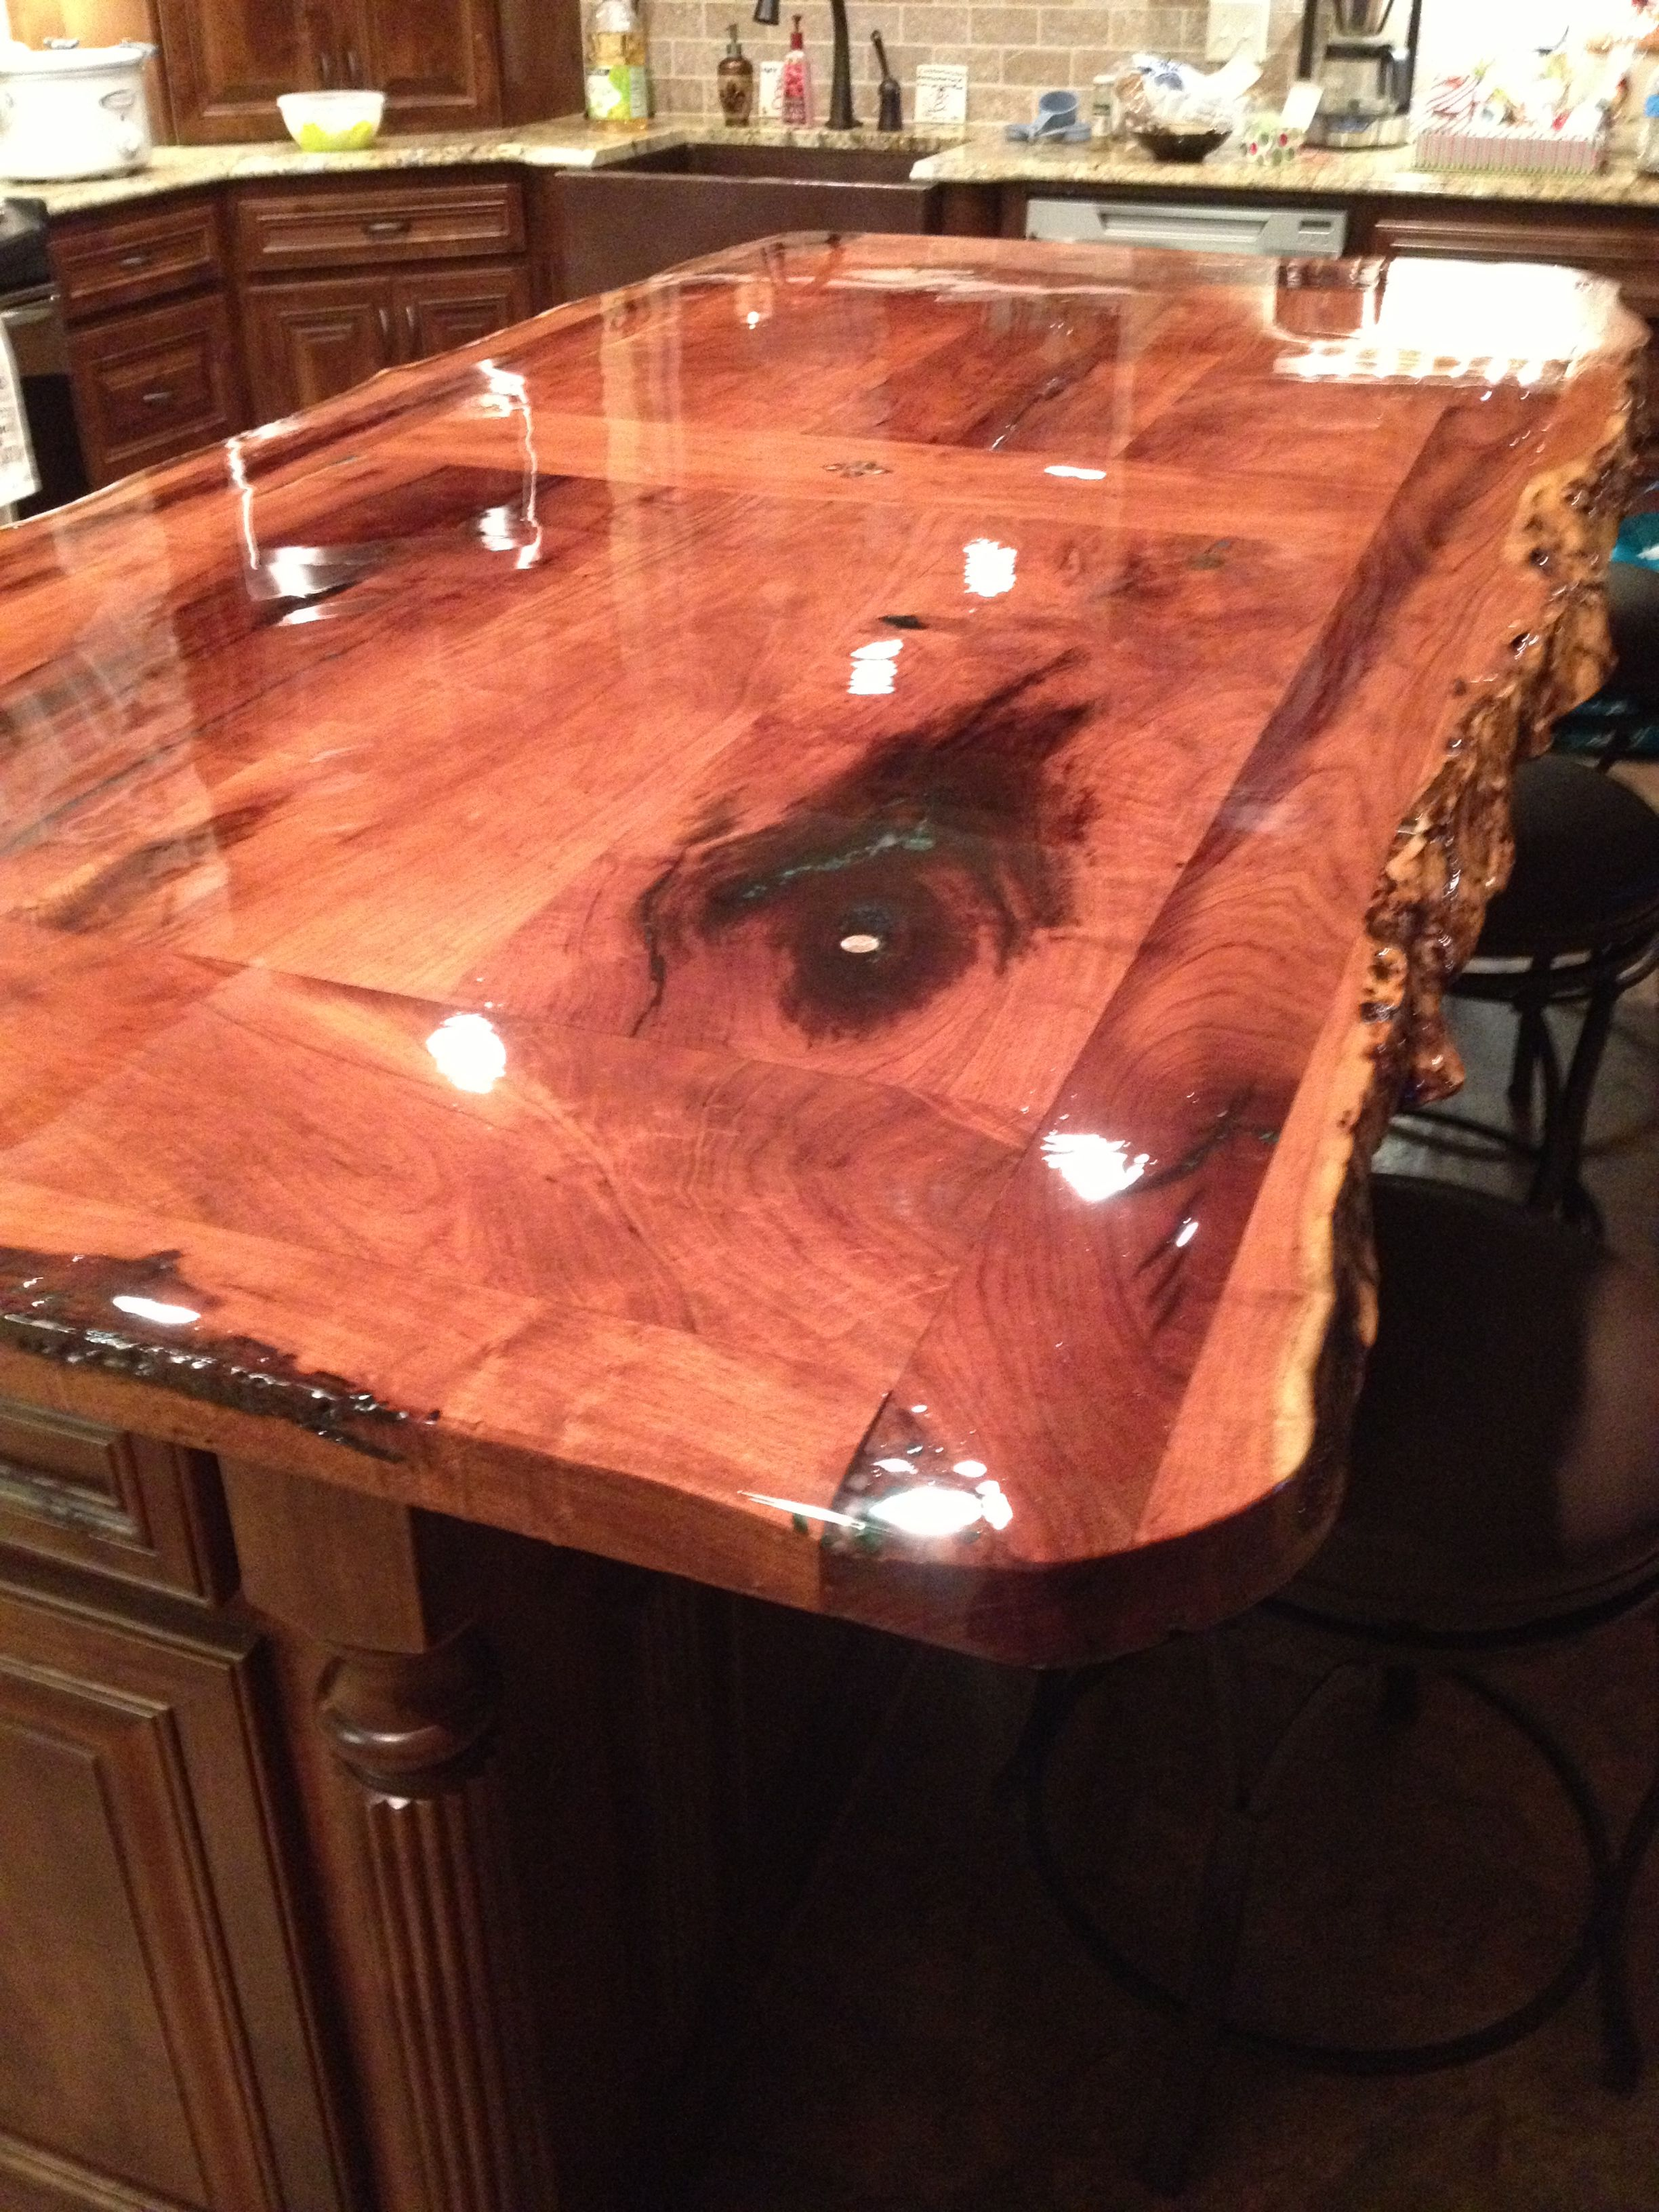 Our Countertop Bar. Found The Mesquite Wood At A Mill In East Texas. Inlaid